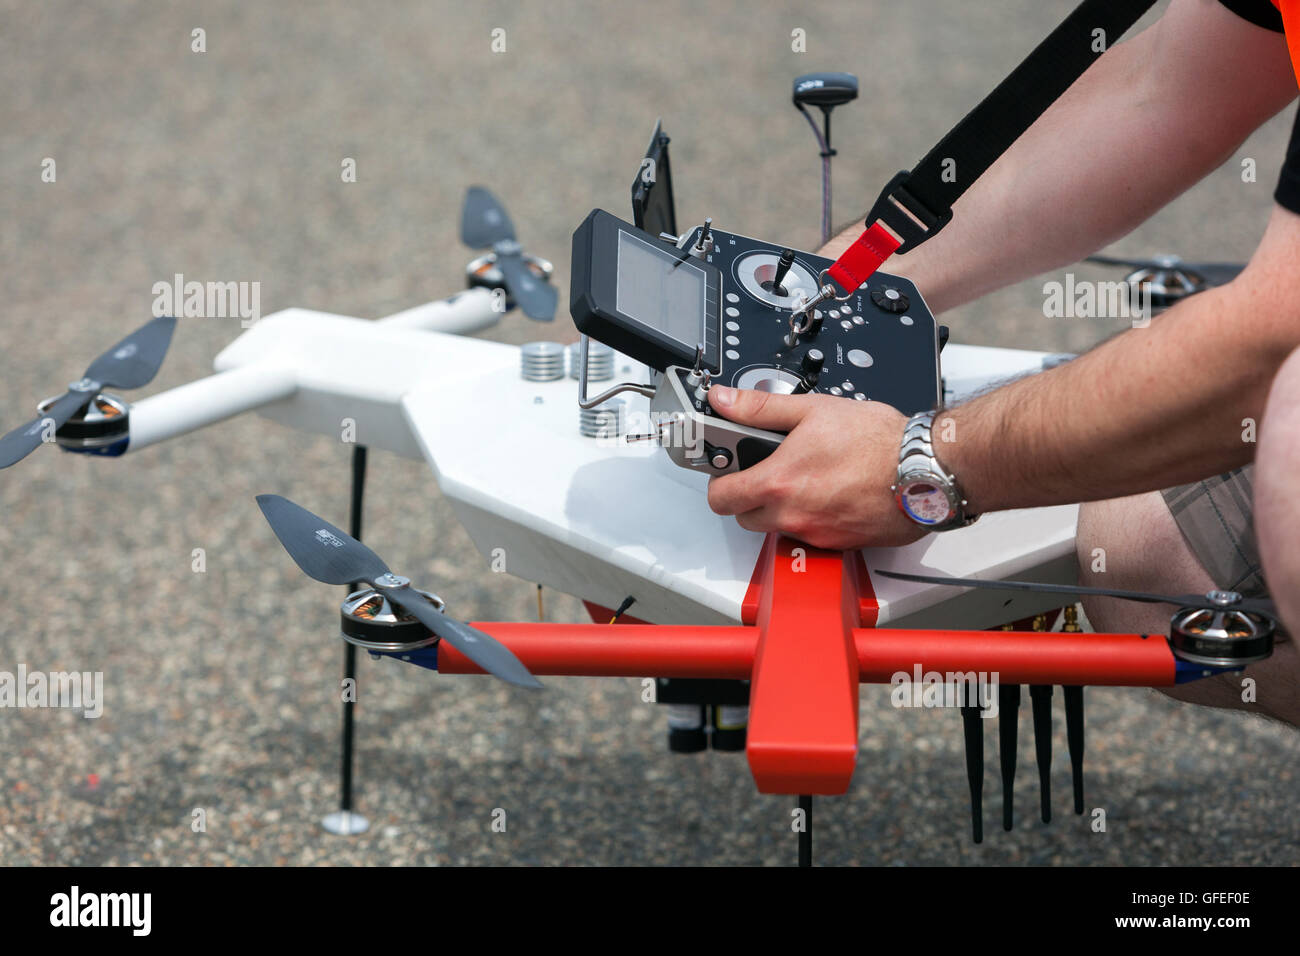 Drone Control Stock Photos Images Alamy Dji Phantom 2 Vision Central Circuit Board Rc Hobbies Preparation And Radio Panel For A Image